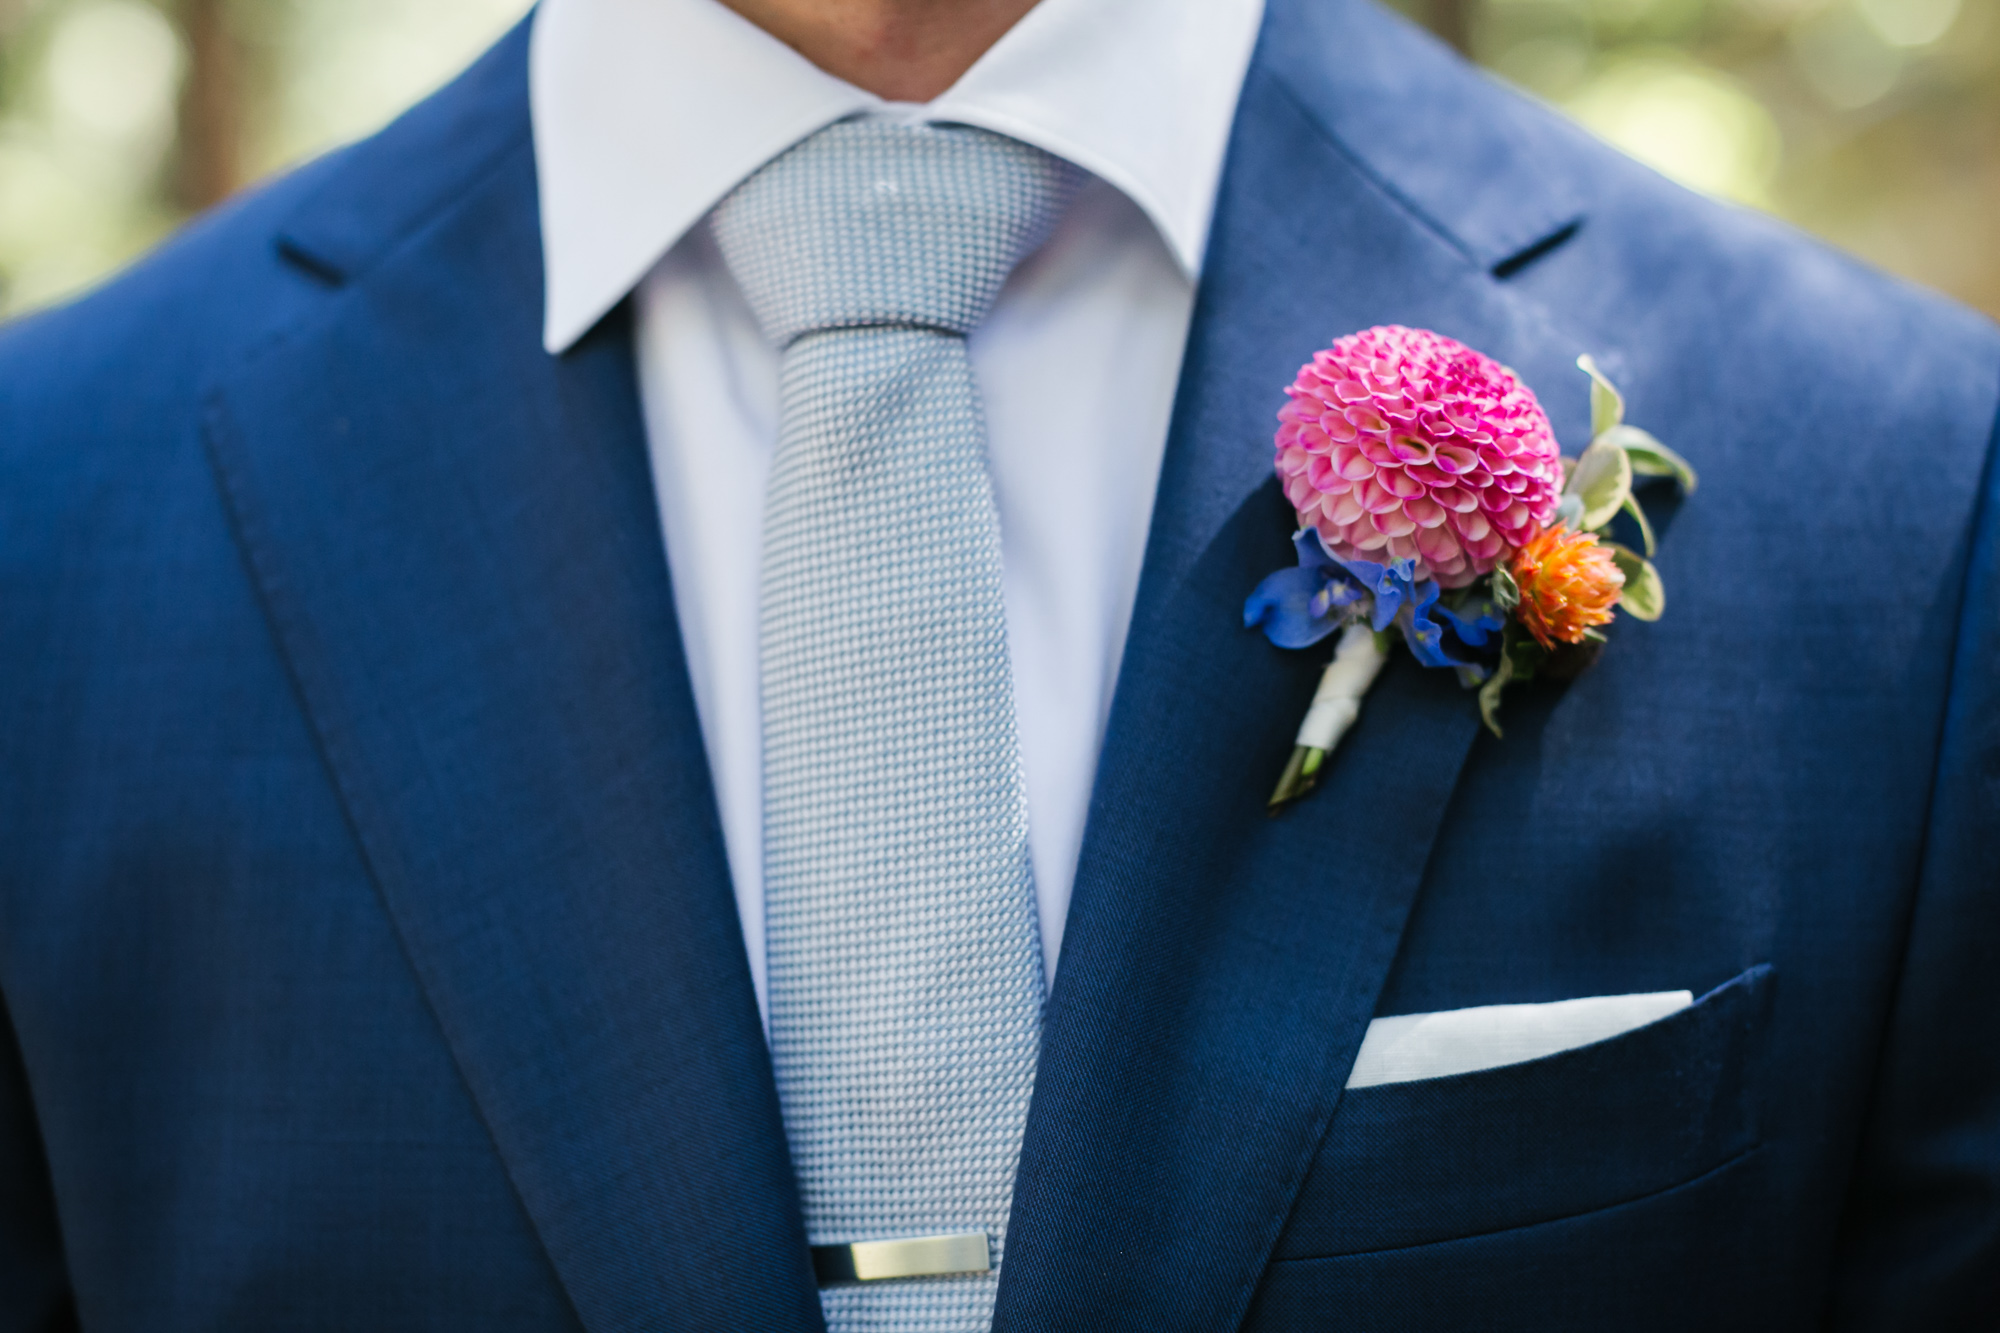 Groom's blue suit with pink dahlia boutonniere